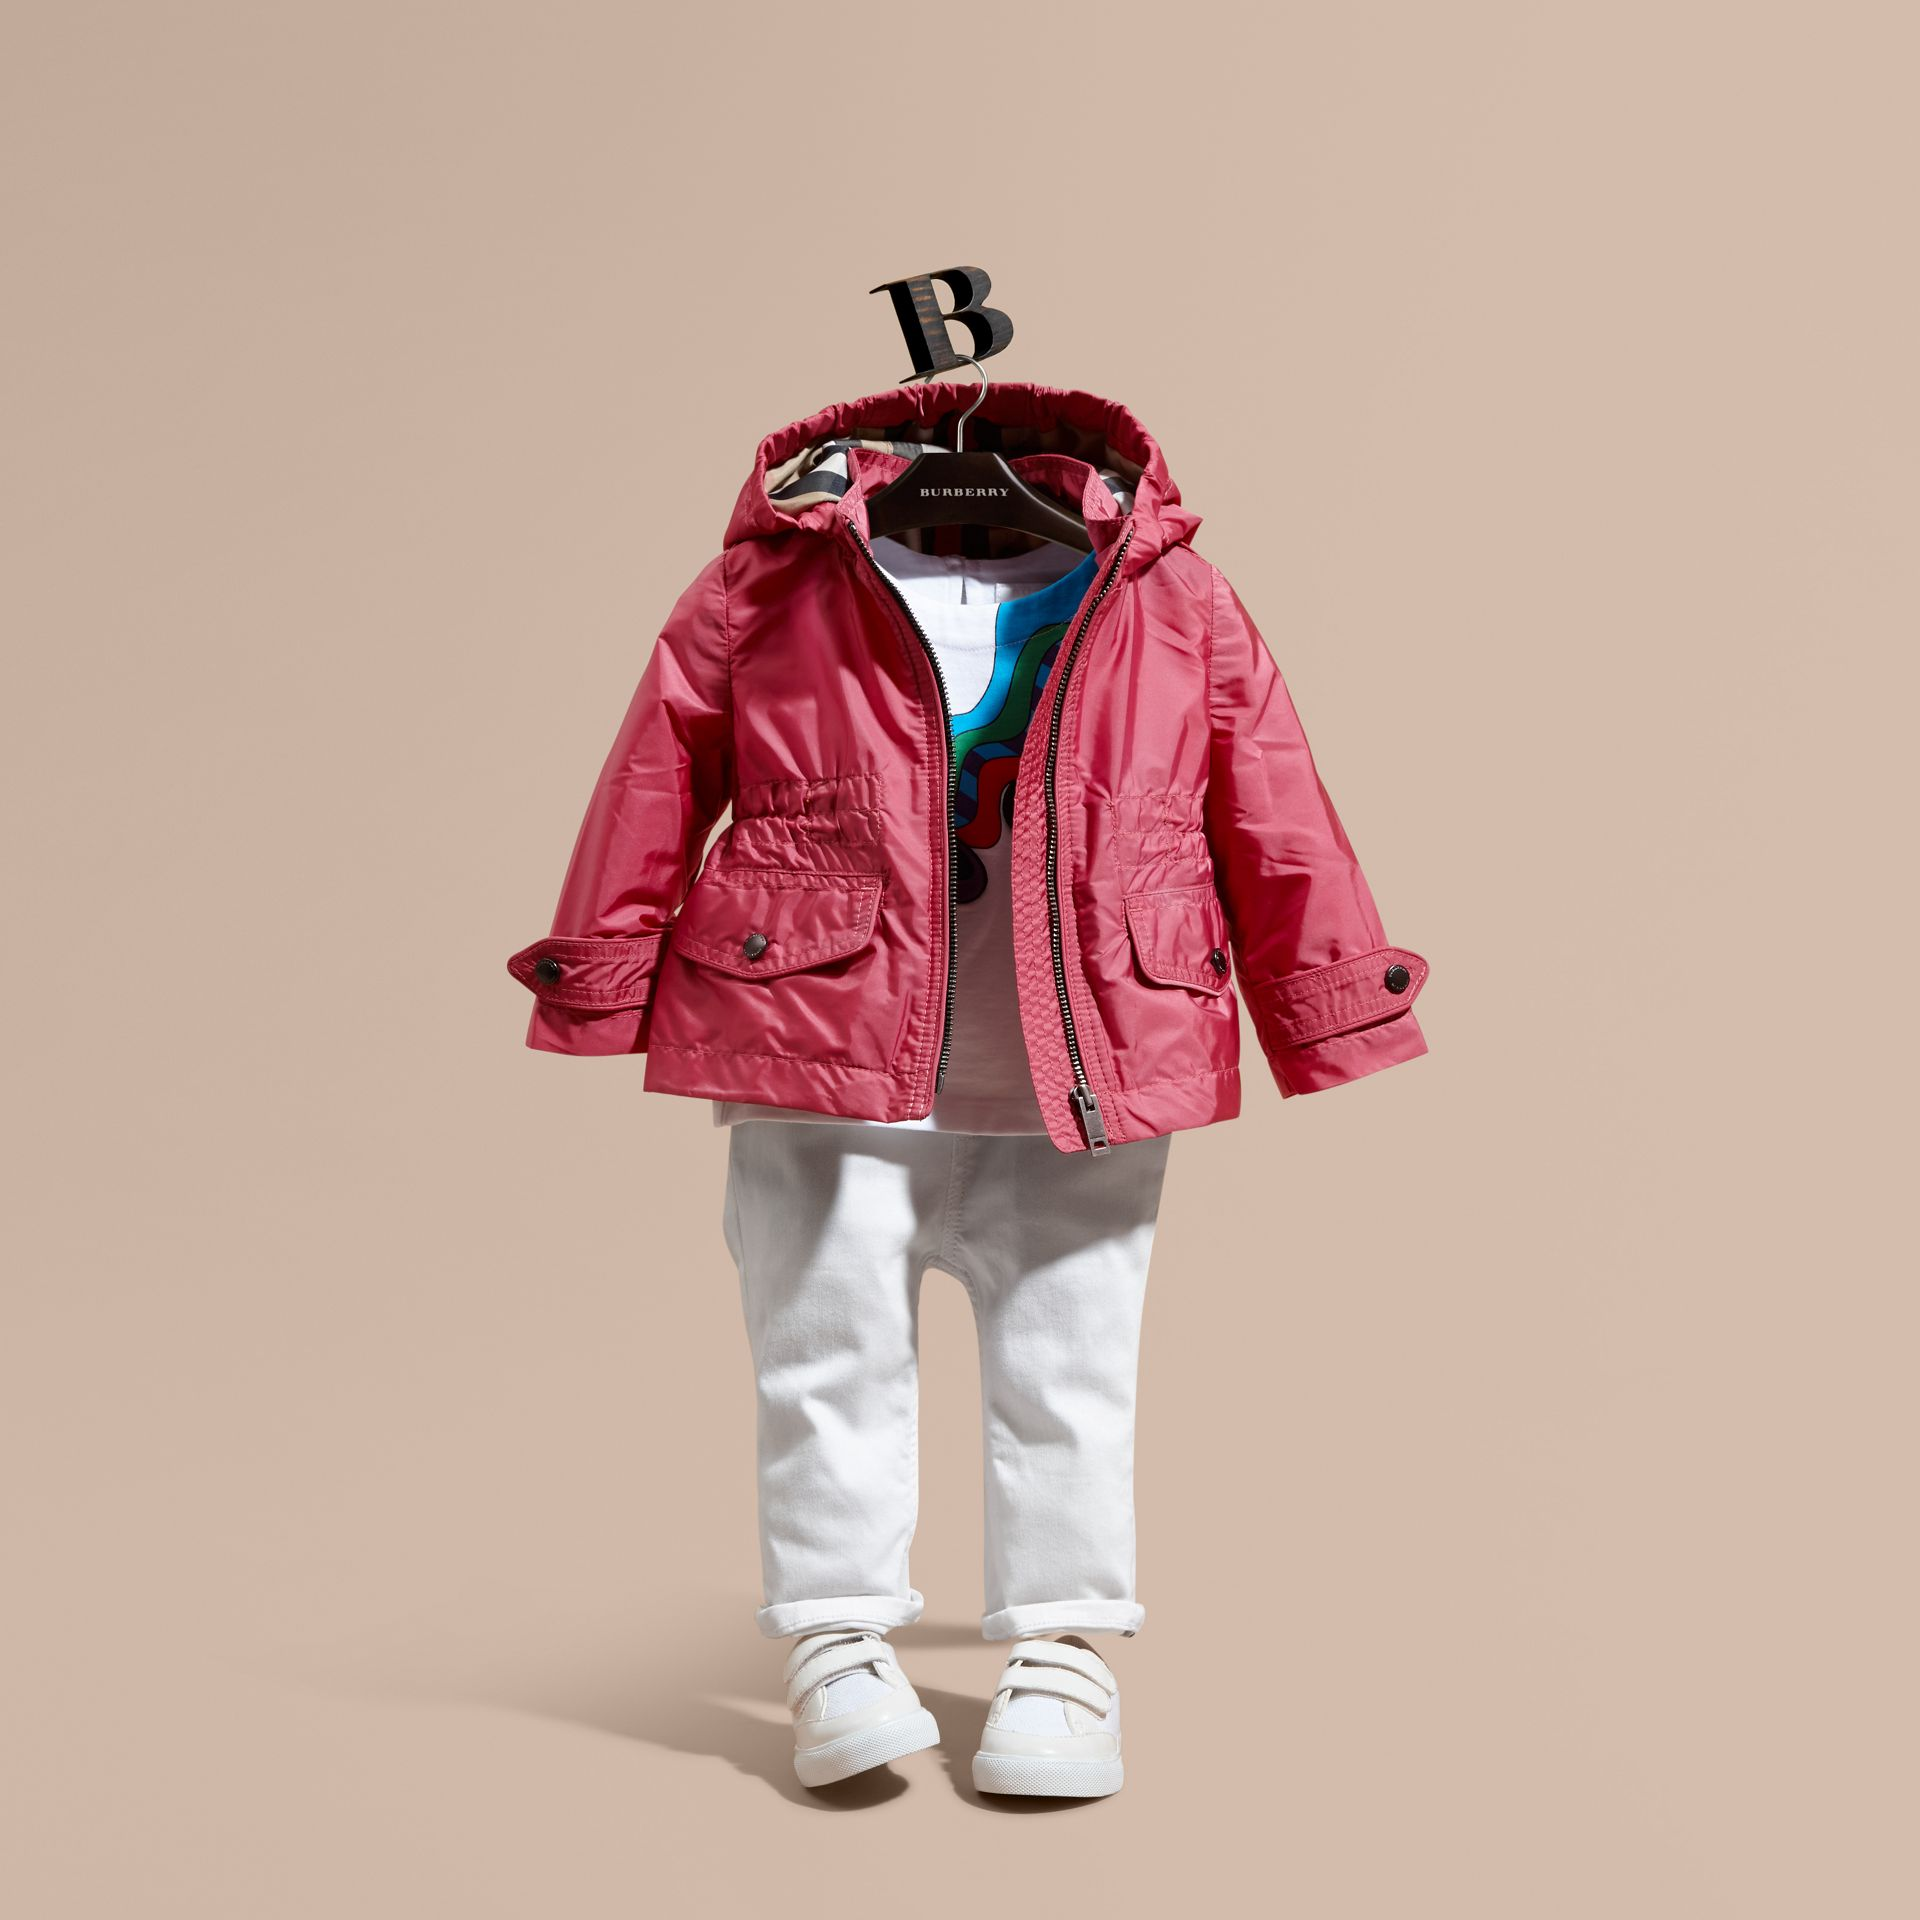 Hooded Packaway Technical Jacket in Pink Azalea - gallery image 1